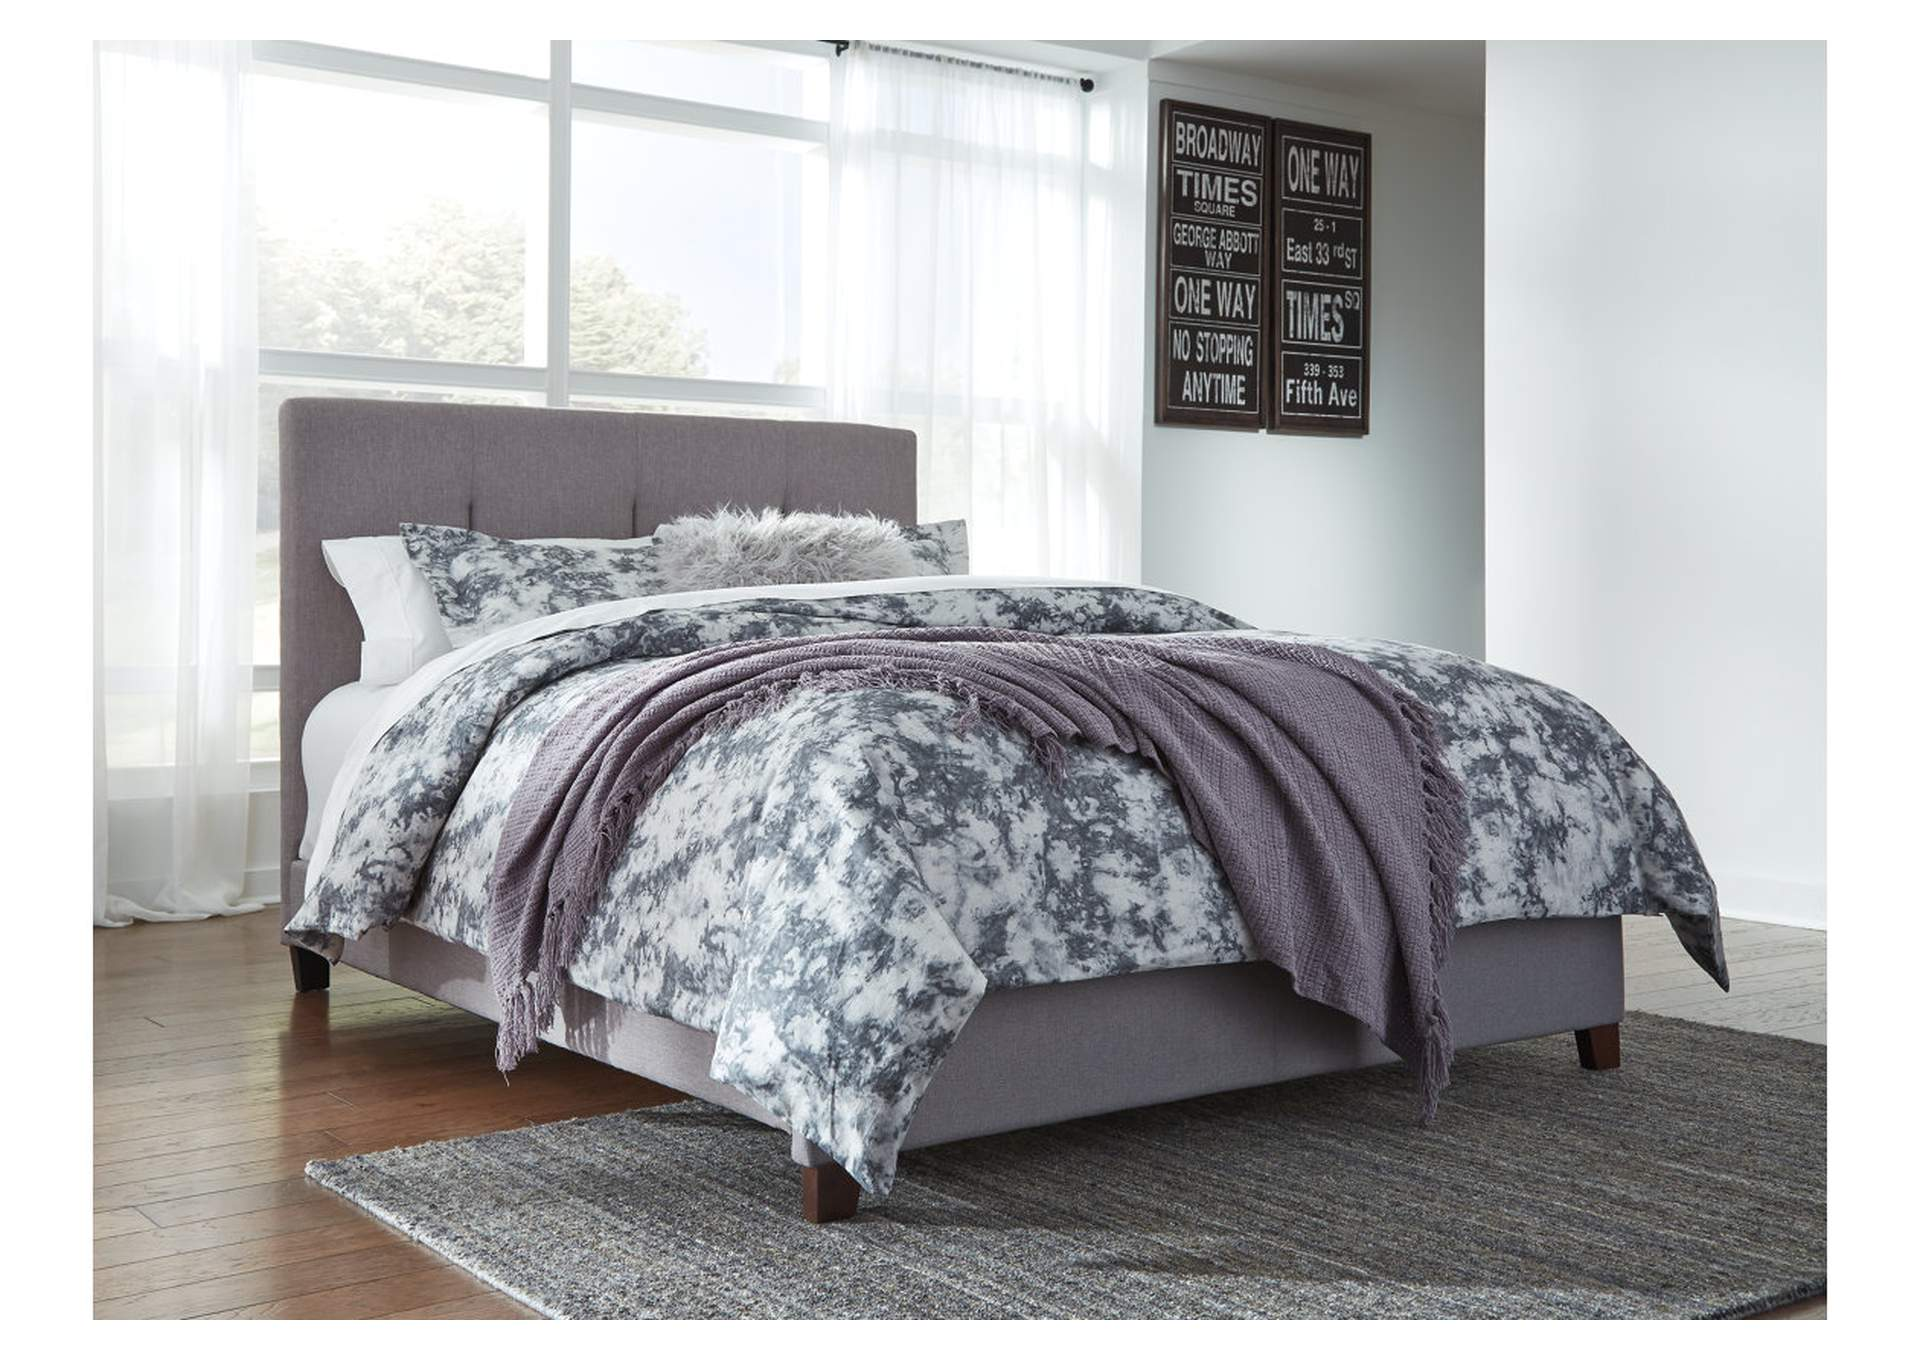 Dolante Gray King Upholstered Platform Bed,Signature Design By Ashley